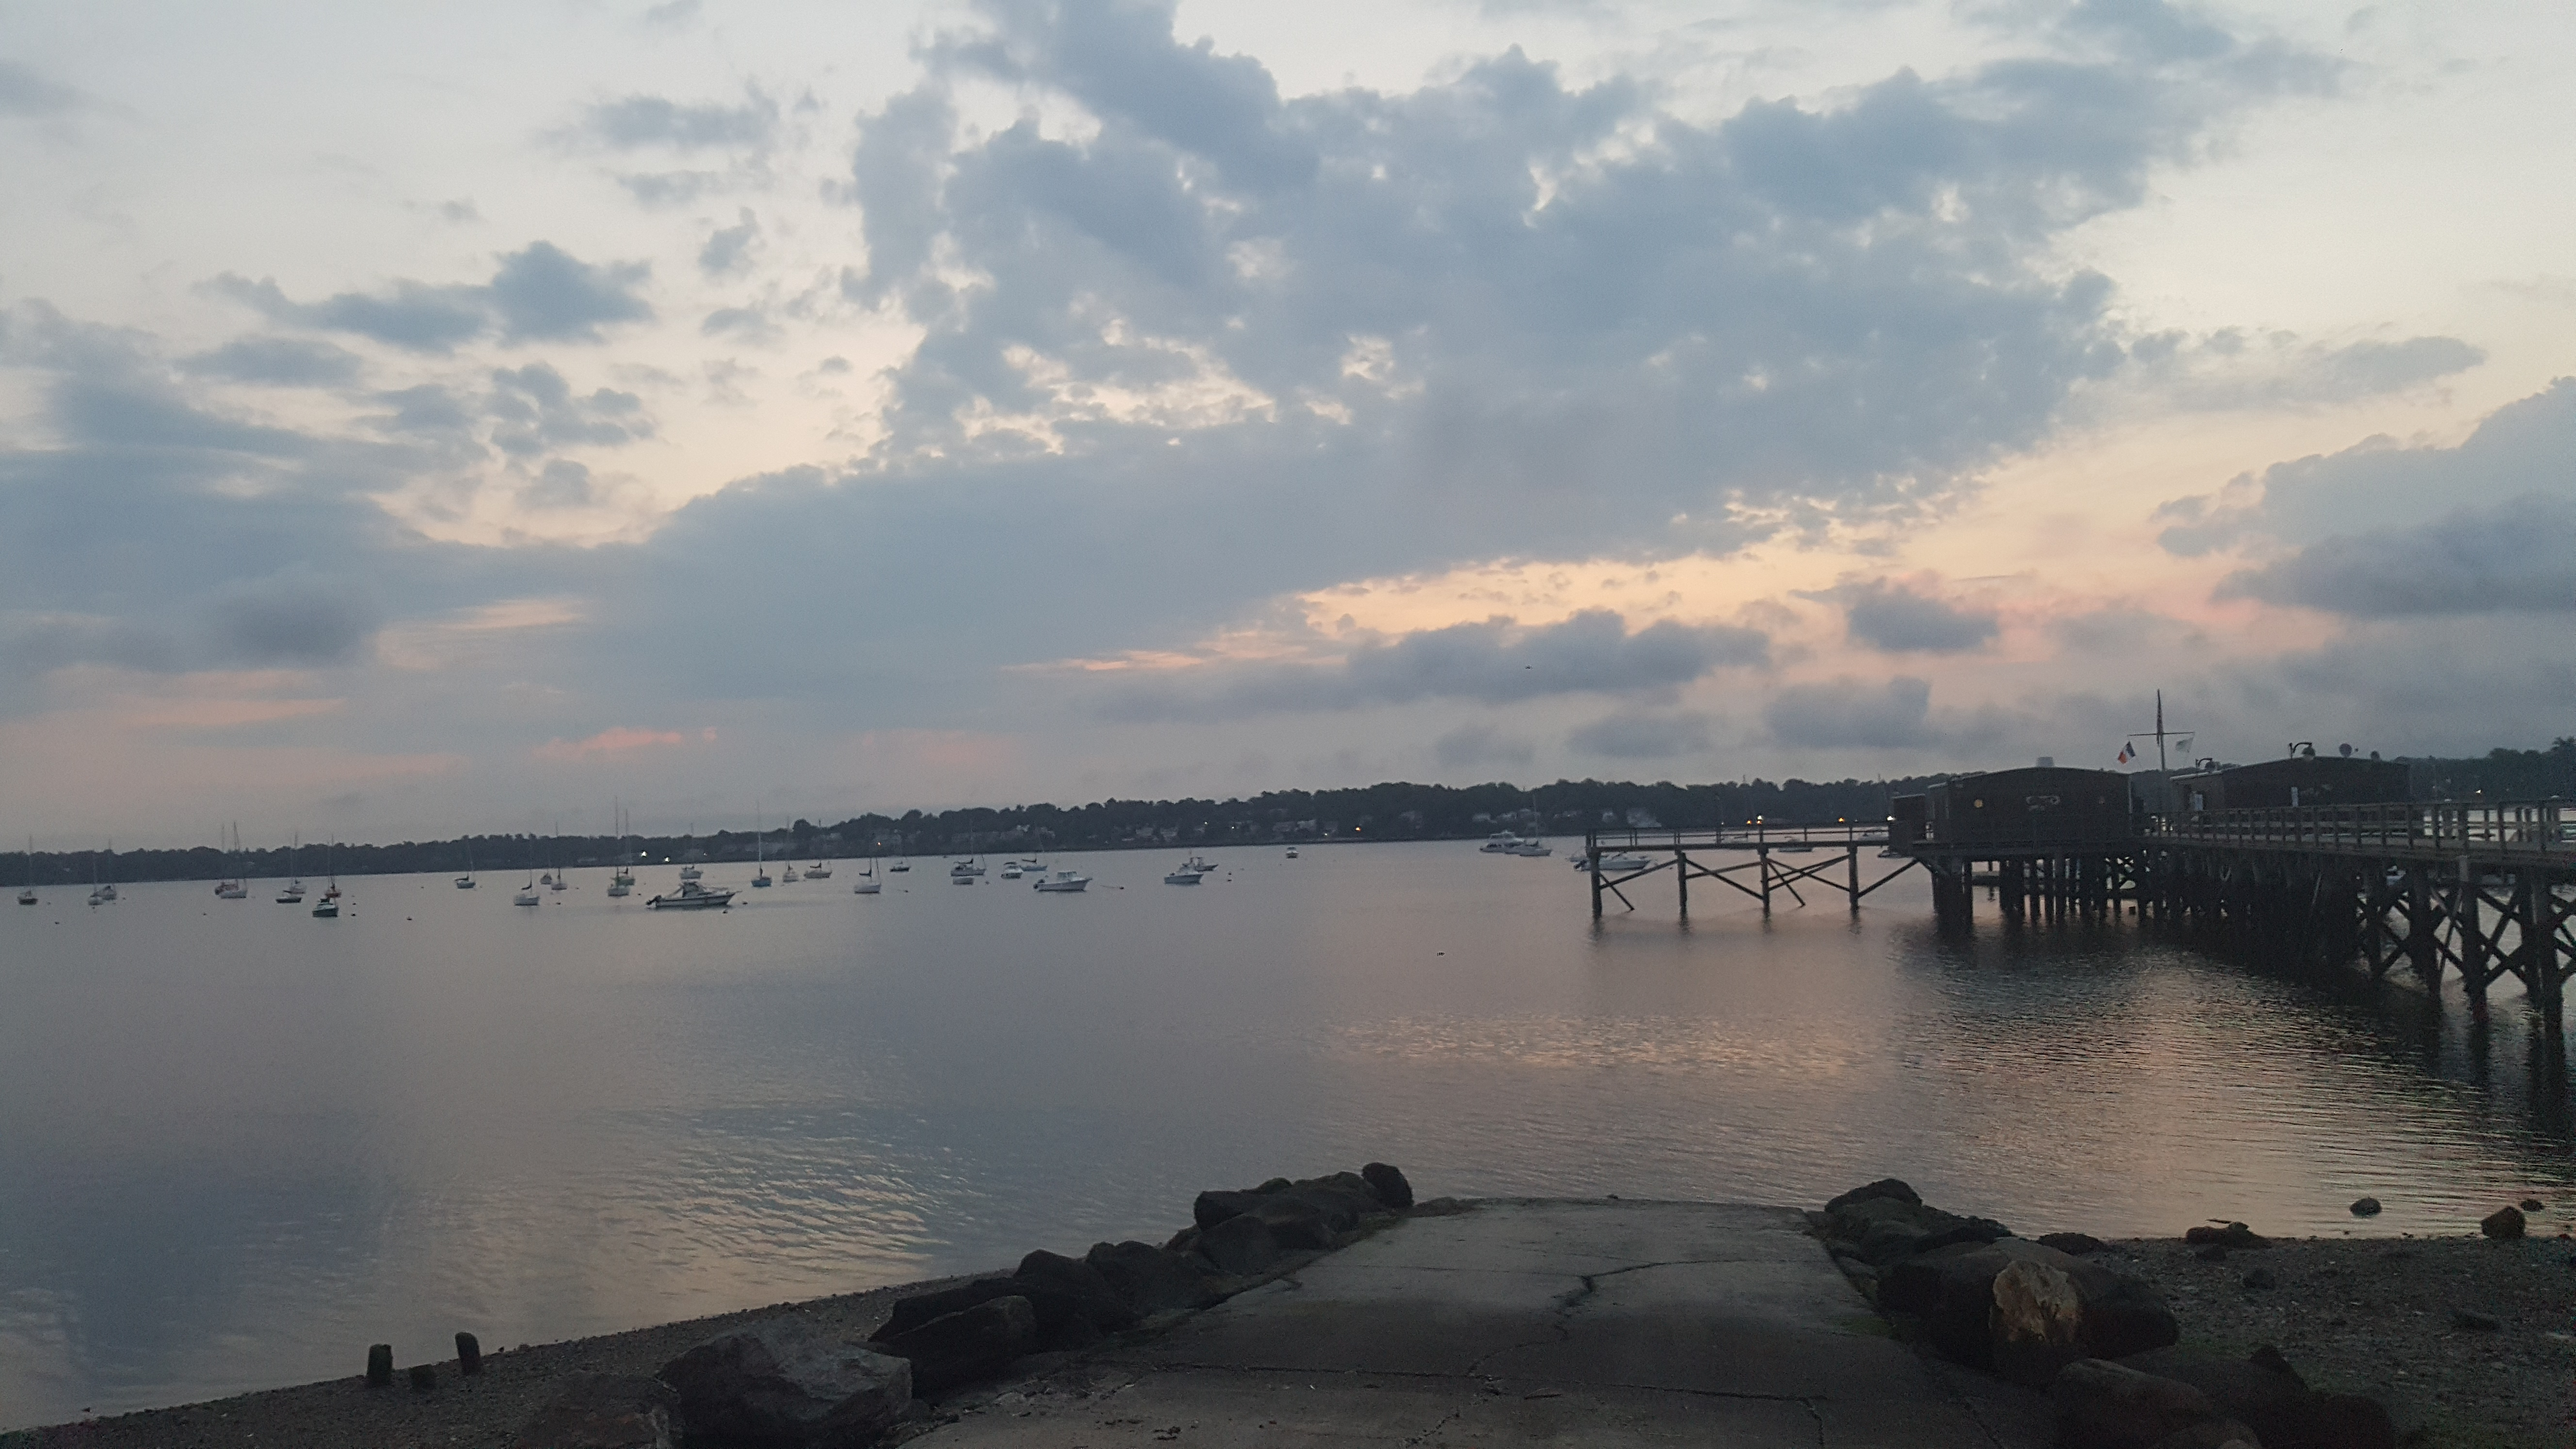 Skyline view of Little Neck Bay at dawn